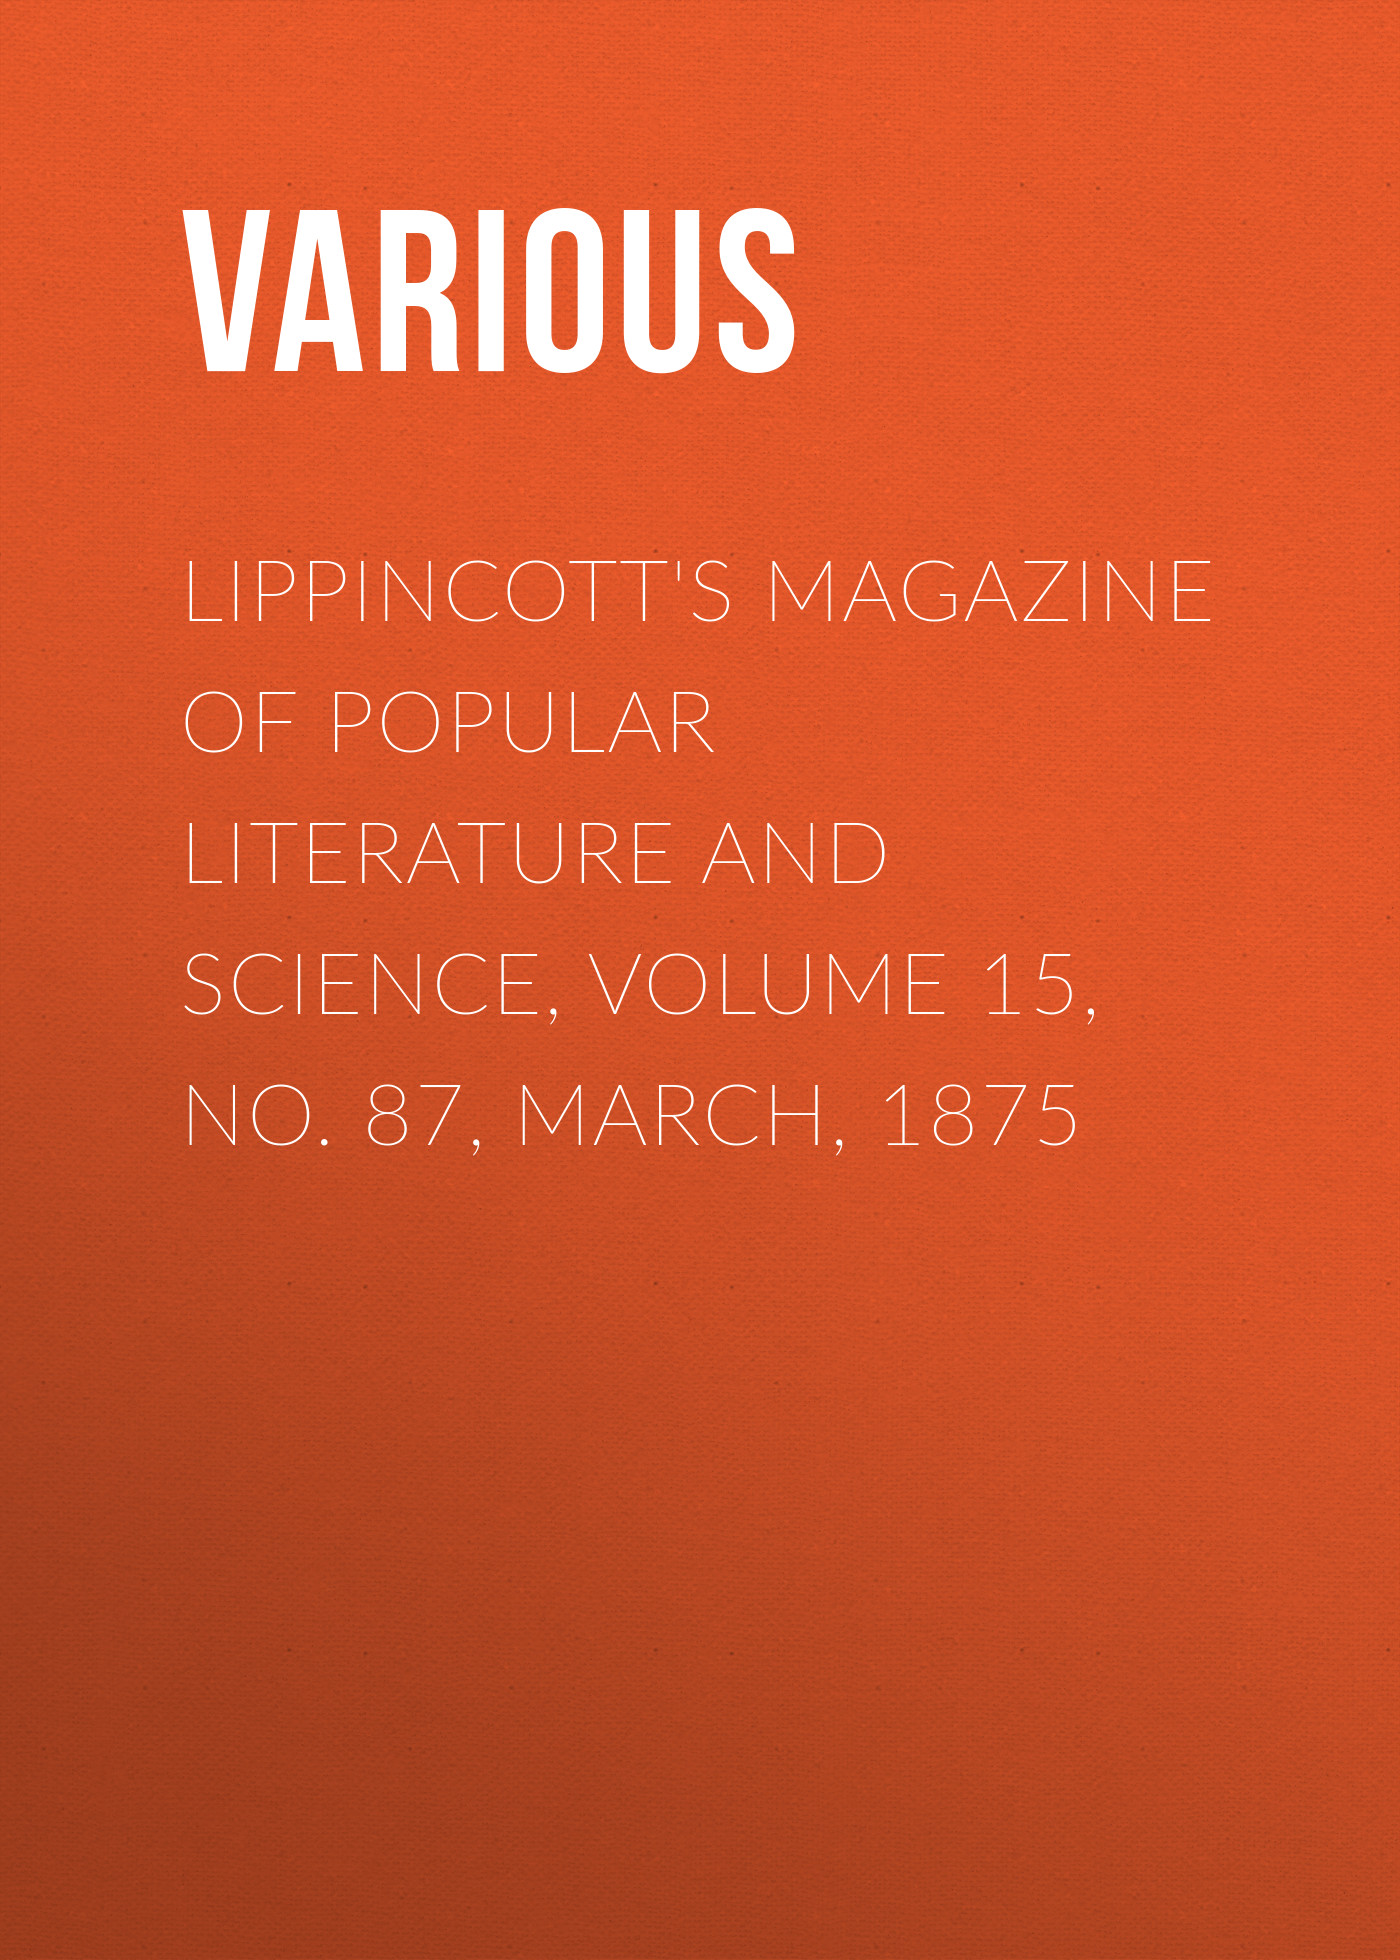 Lippincott\'s Magazine of Popular Literature and Science, Volume 15, No. 87, March, 1875 ( Various  )